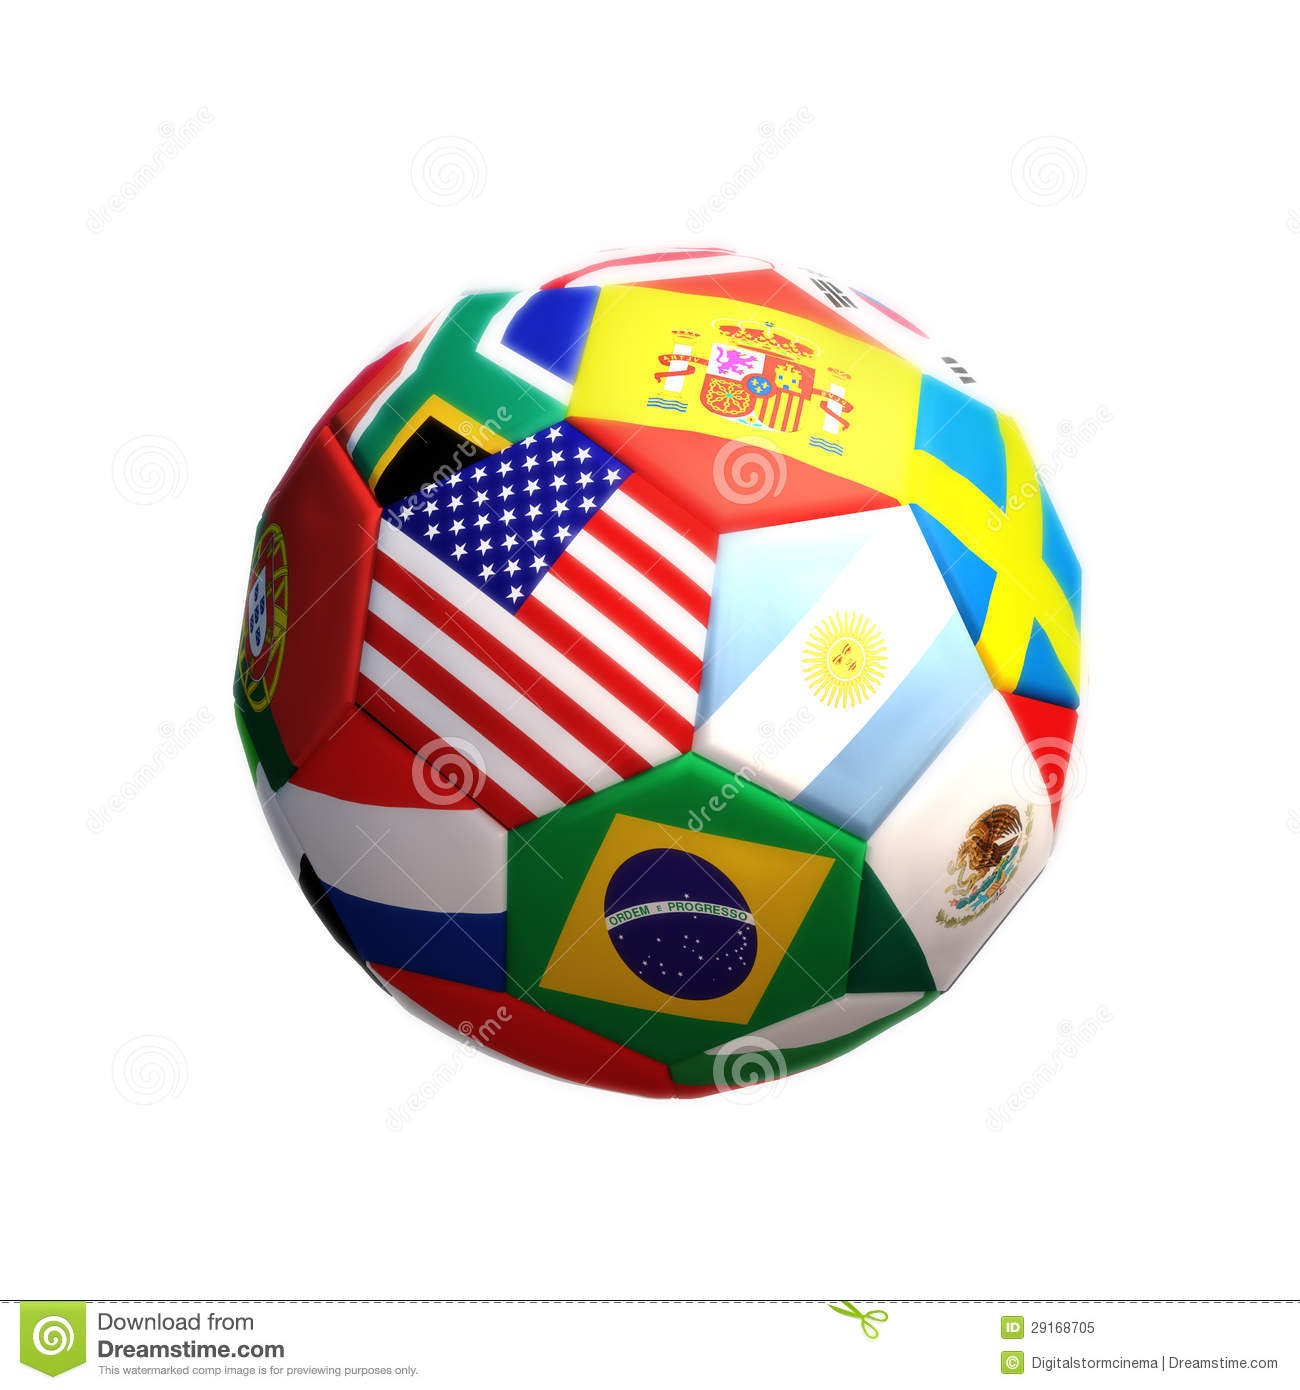 Royalty Free Stock Photo: Soccer or football with countries isolated